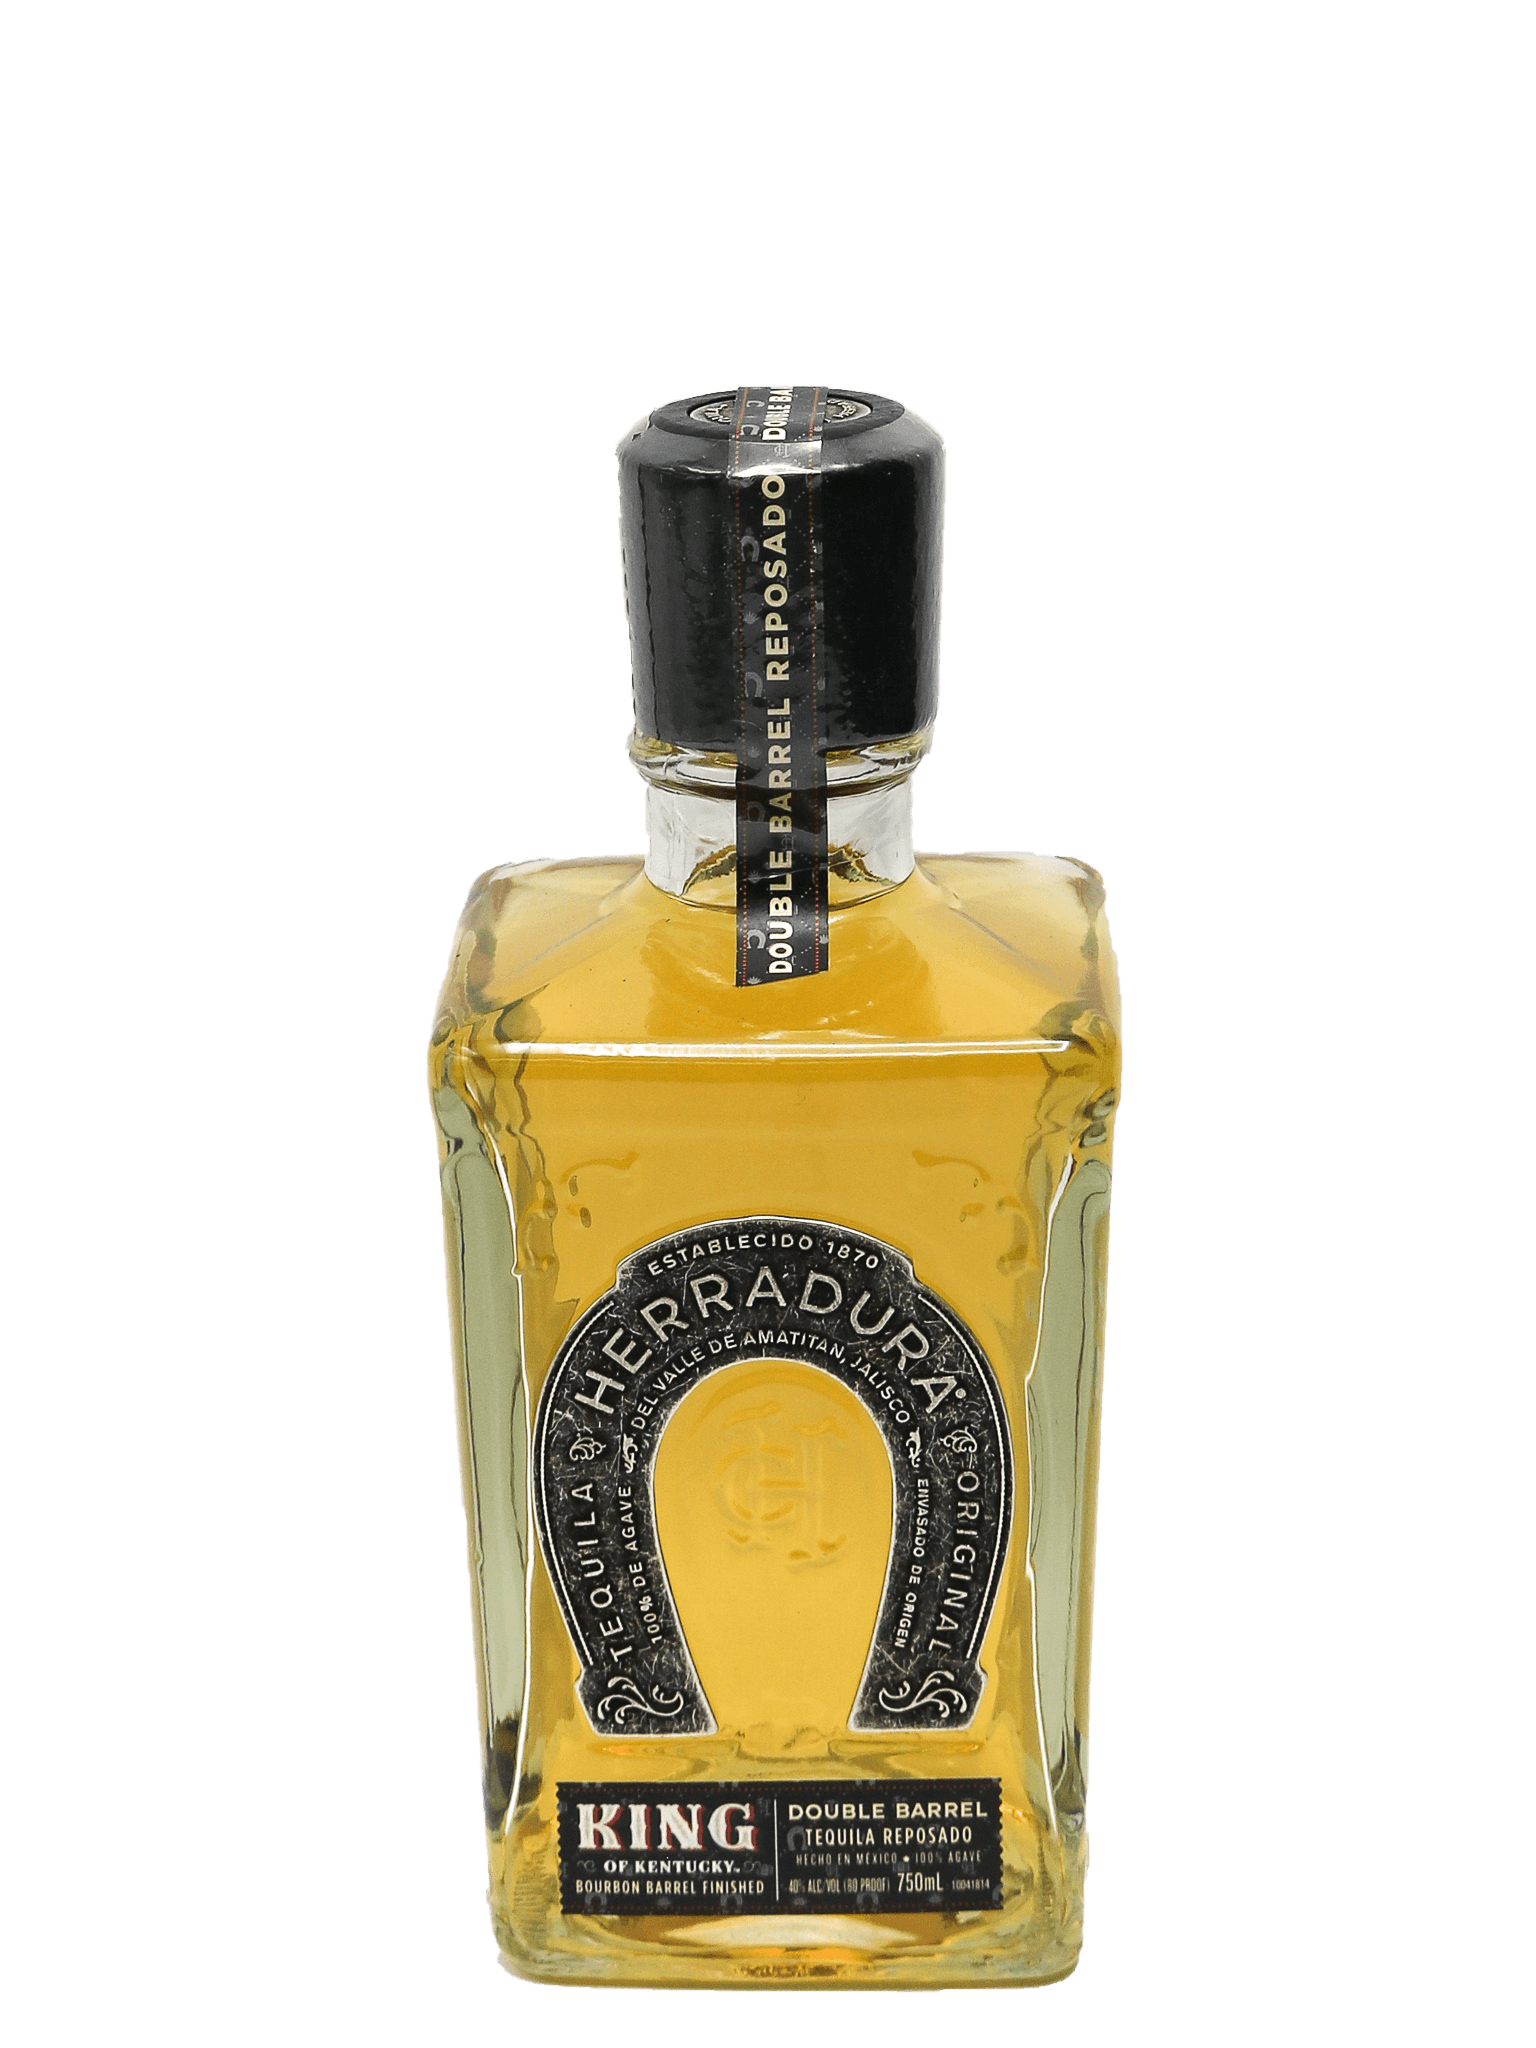 Herradura Double Barrel Reposado Tequila KING of KENTUCKY Bourbon Barrel Finished Barrel # 2345